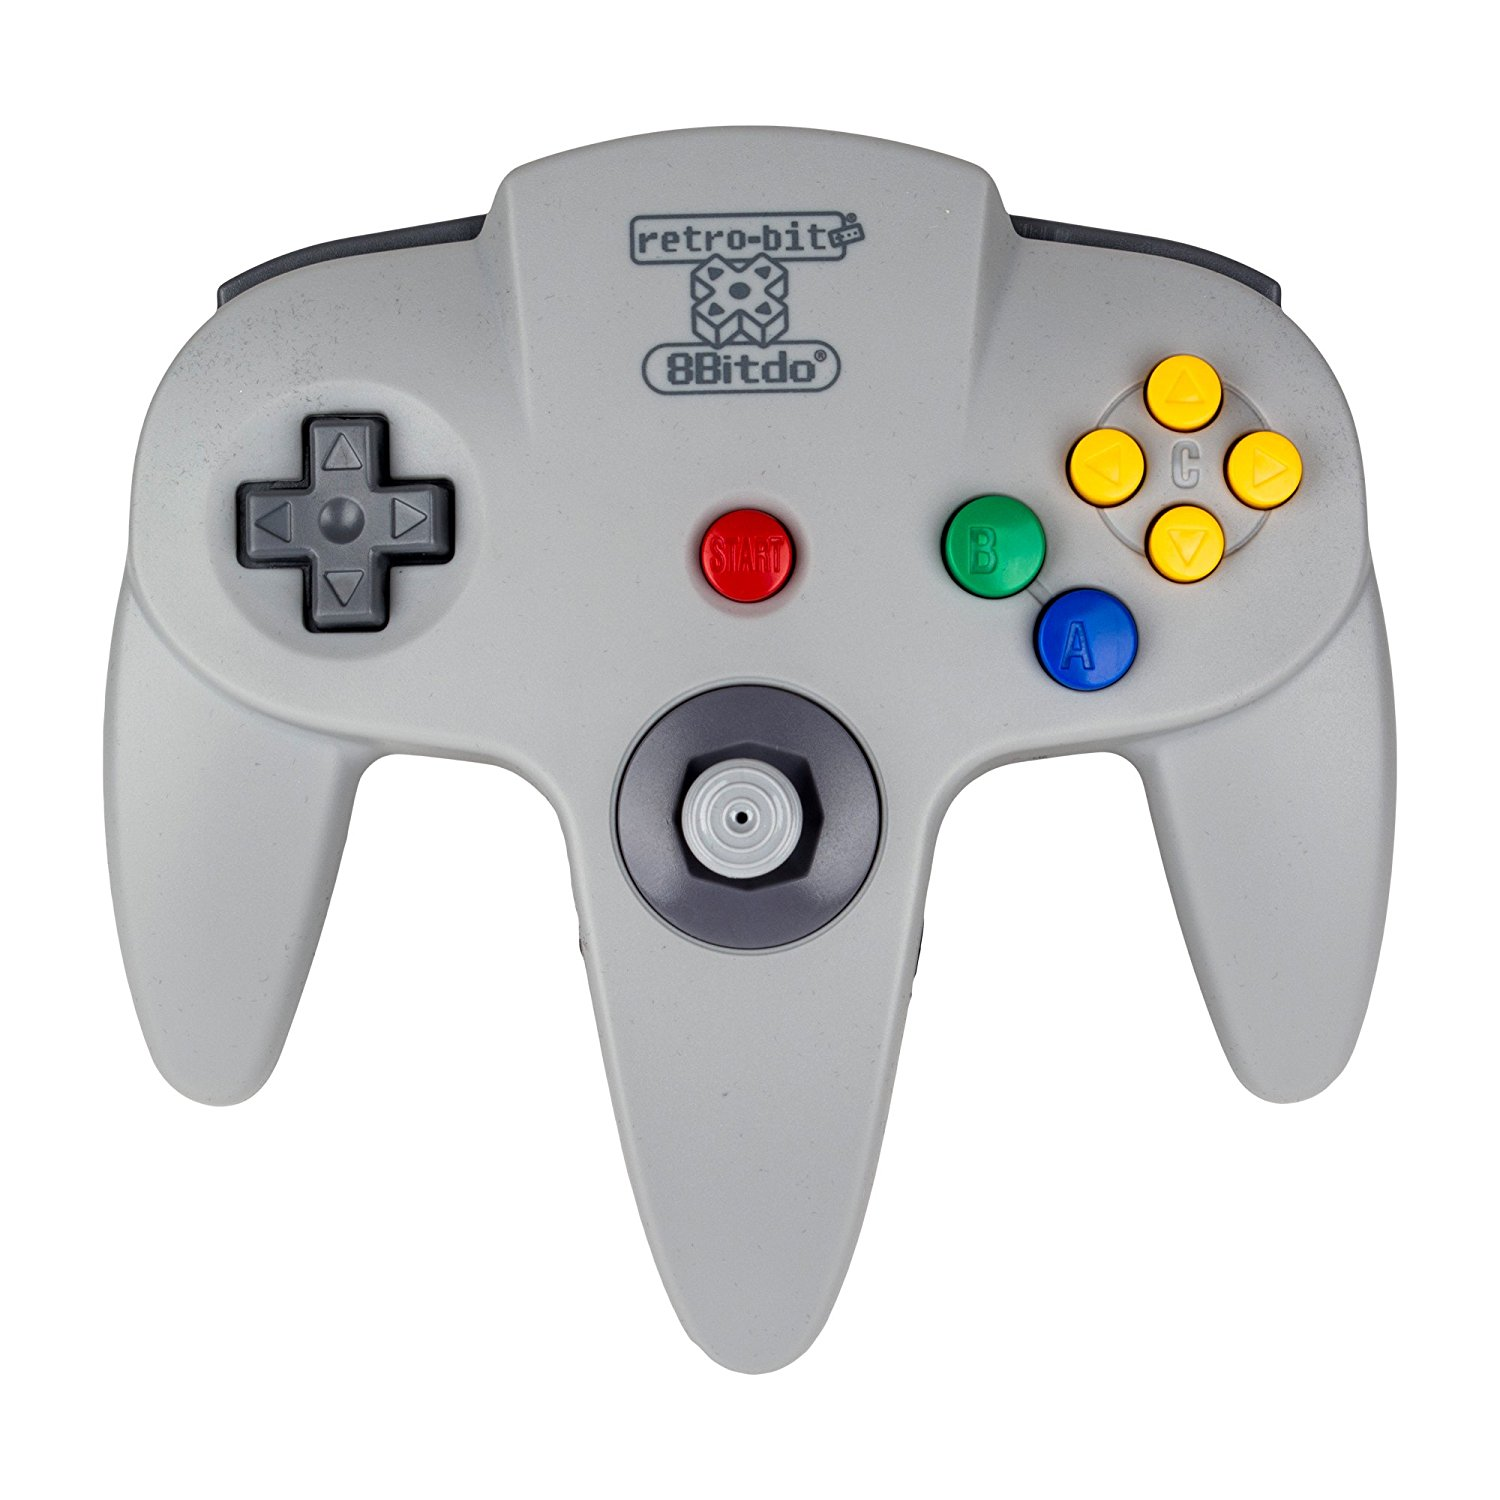 retro-bit rb-8bd-6584 Wireless Bluetooth N64 controller for Andoroid iOS and PC Grey